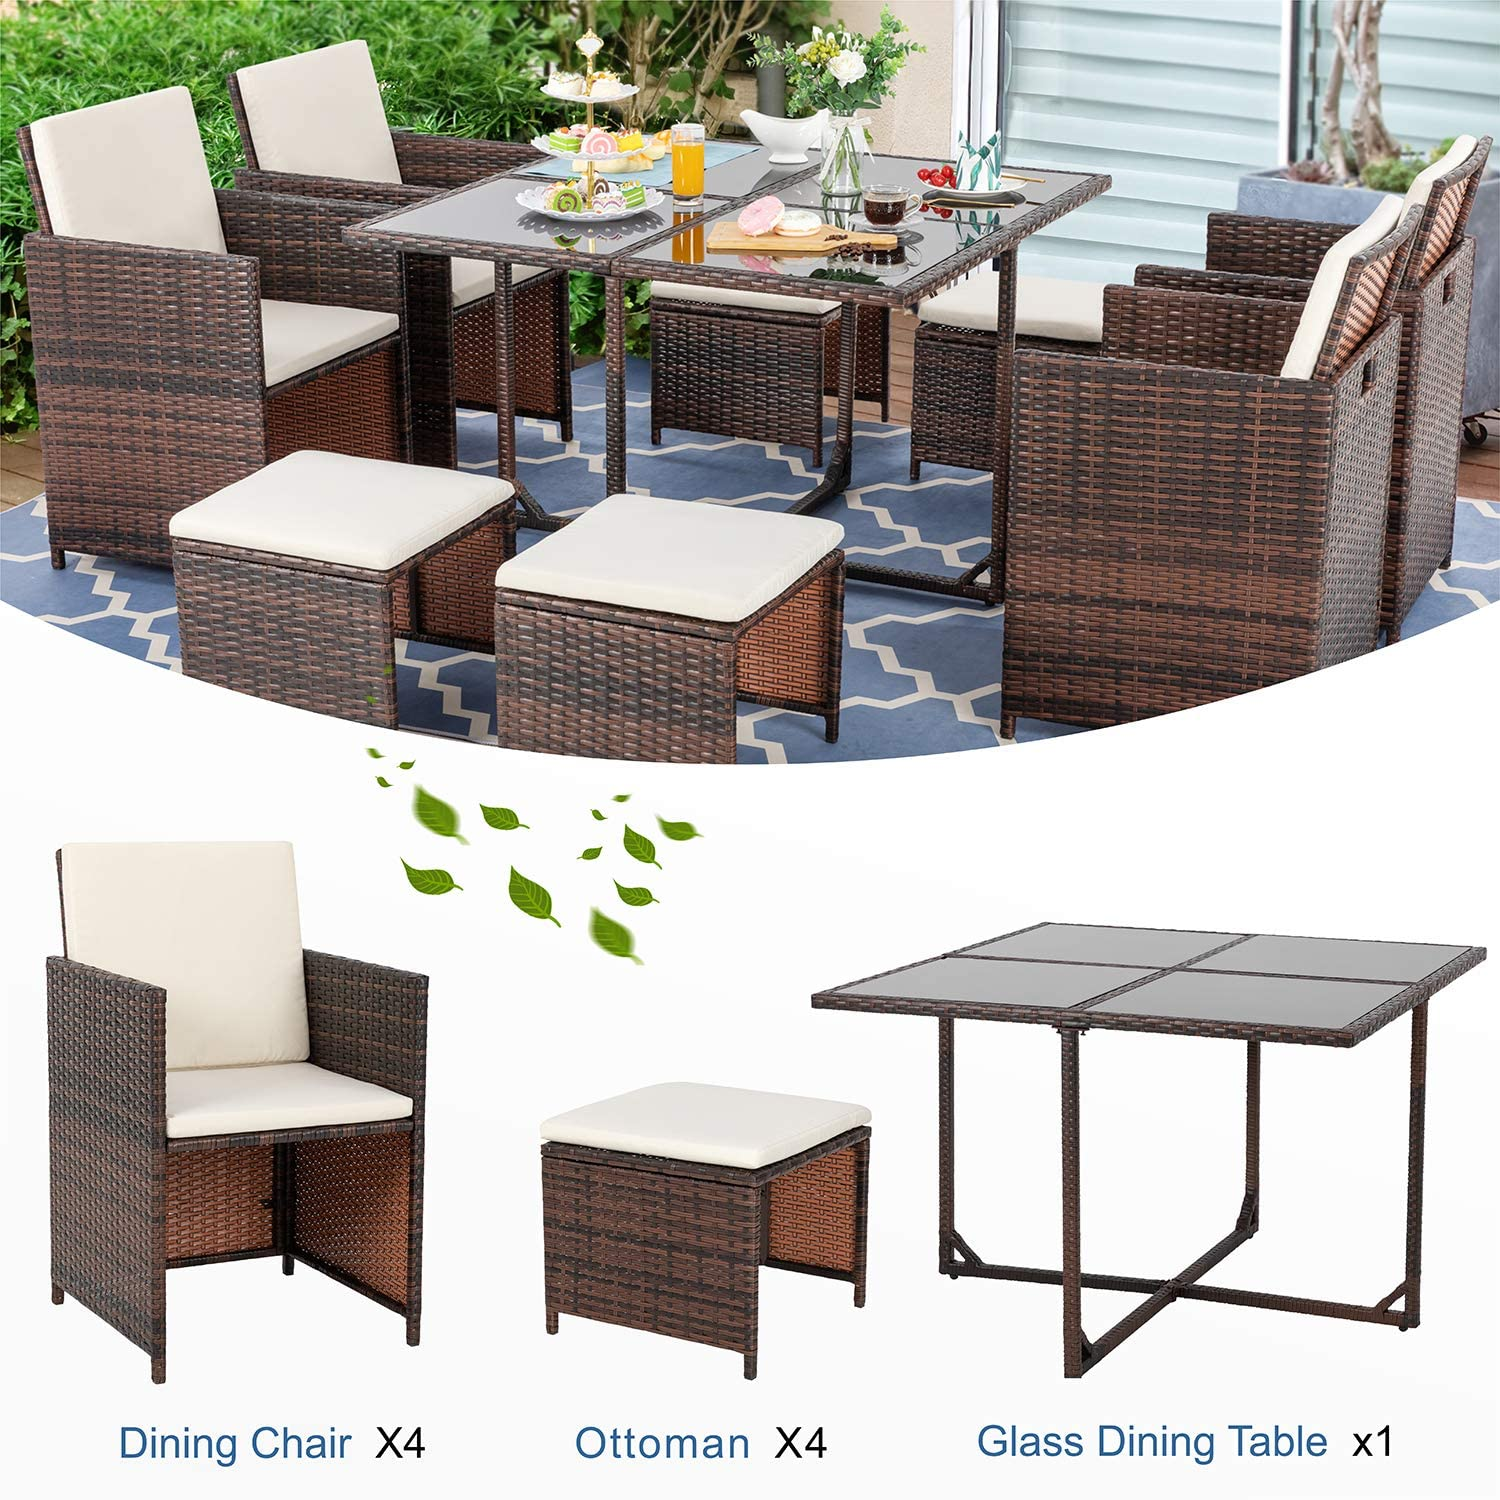 Vongrasig 9 Piece Small Patio Dining Set, Outdoor Space Saving PE Wicker  Dining Furniture Set, Glass Patio Dining Table with Cushioned Wicker Chairs  ...